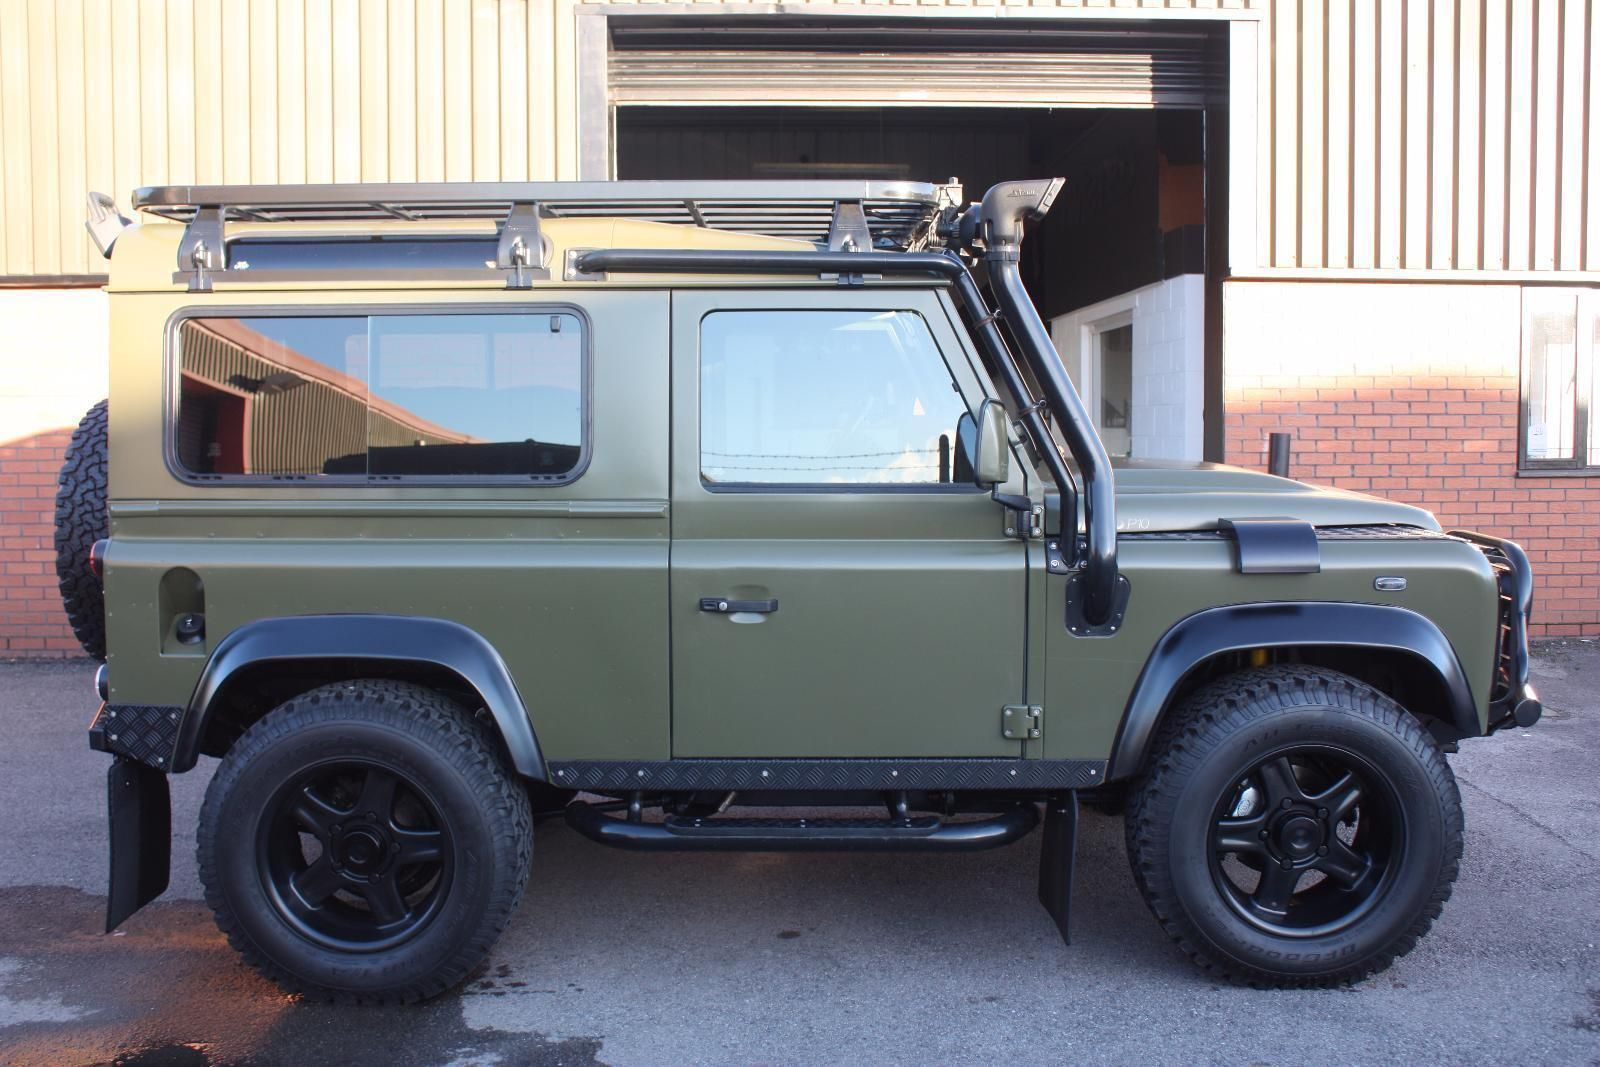 2002 LAND ROVER DEFENDER 90 Twisted One off XS Black Edition 2.5 TD5